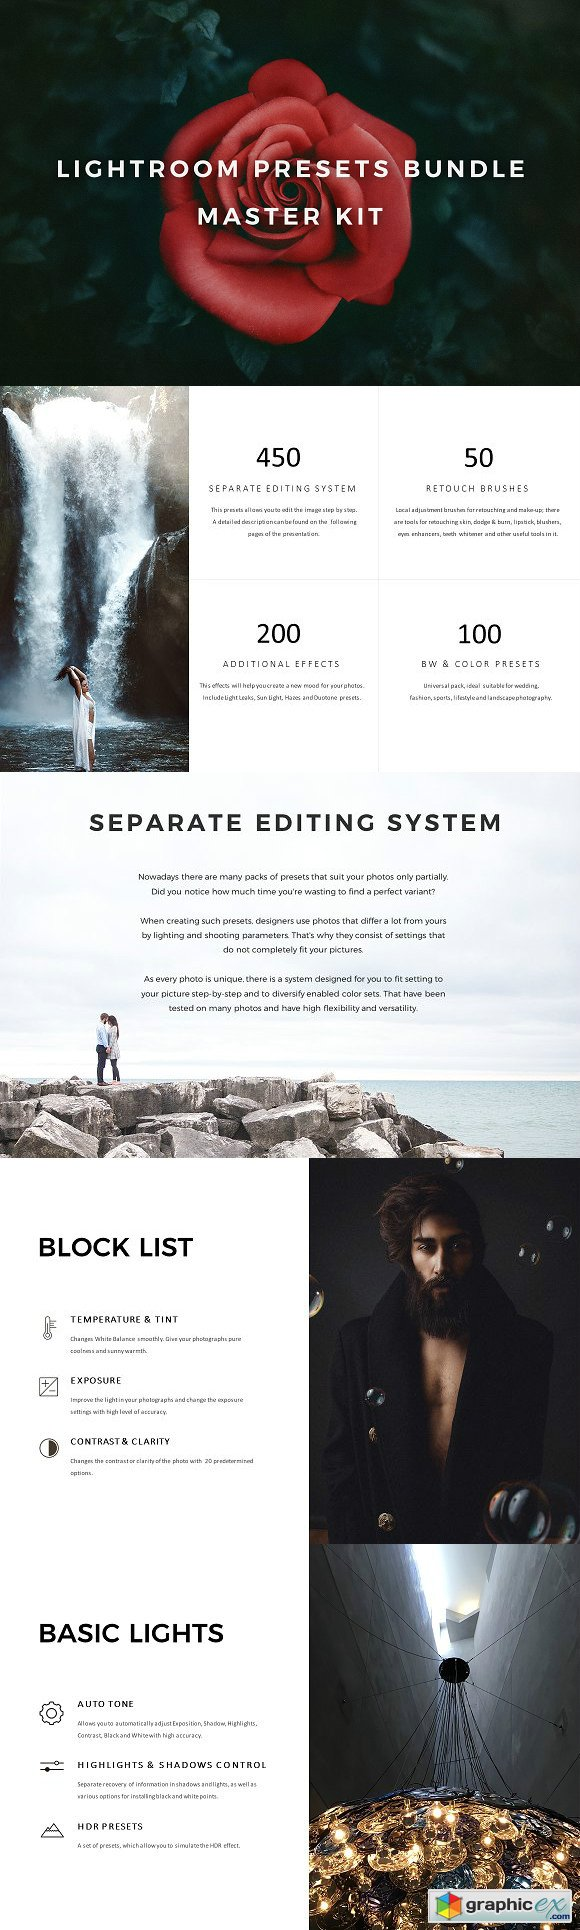 Lightroom Presets Bundle Master Kit